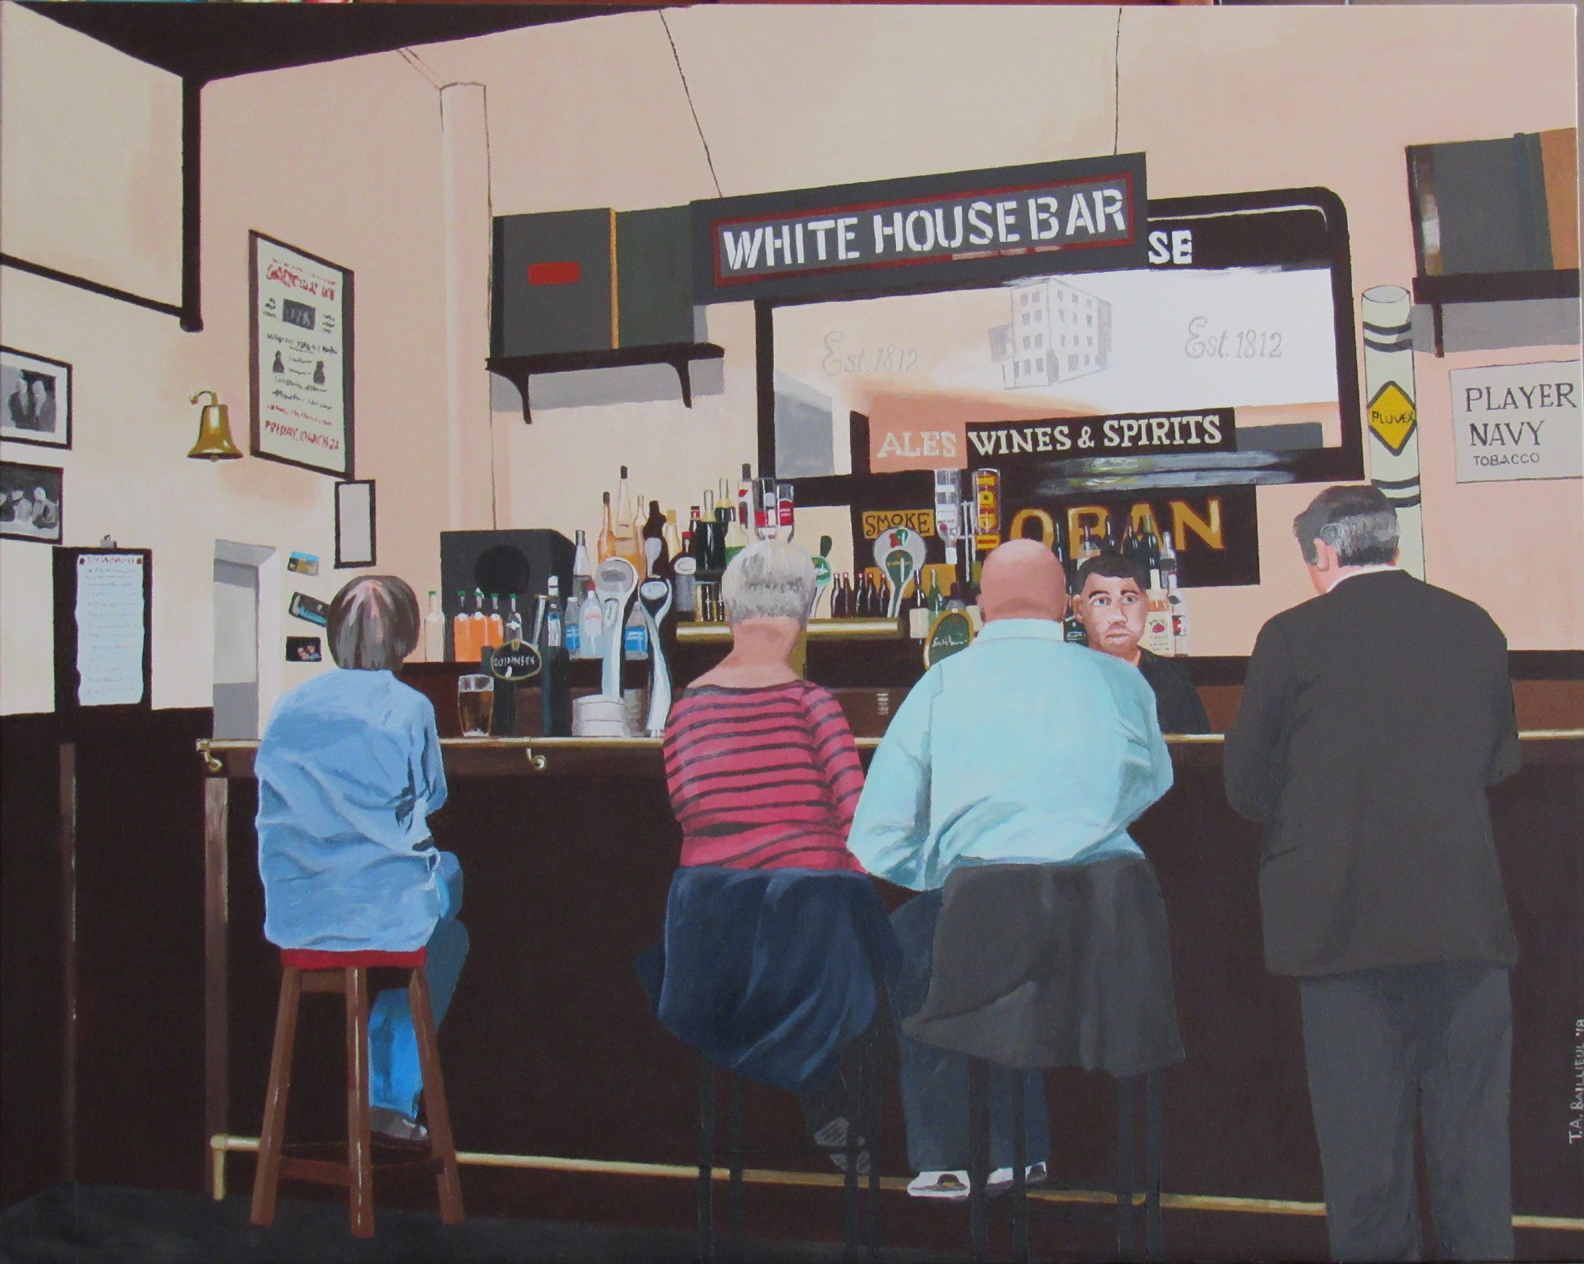 The Whitehouse Bar - Limerick, Ireland